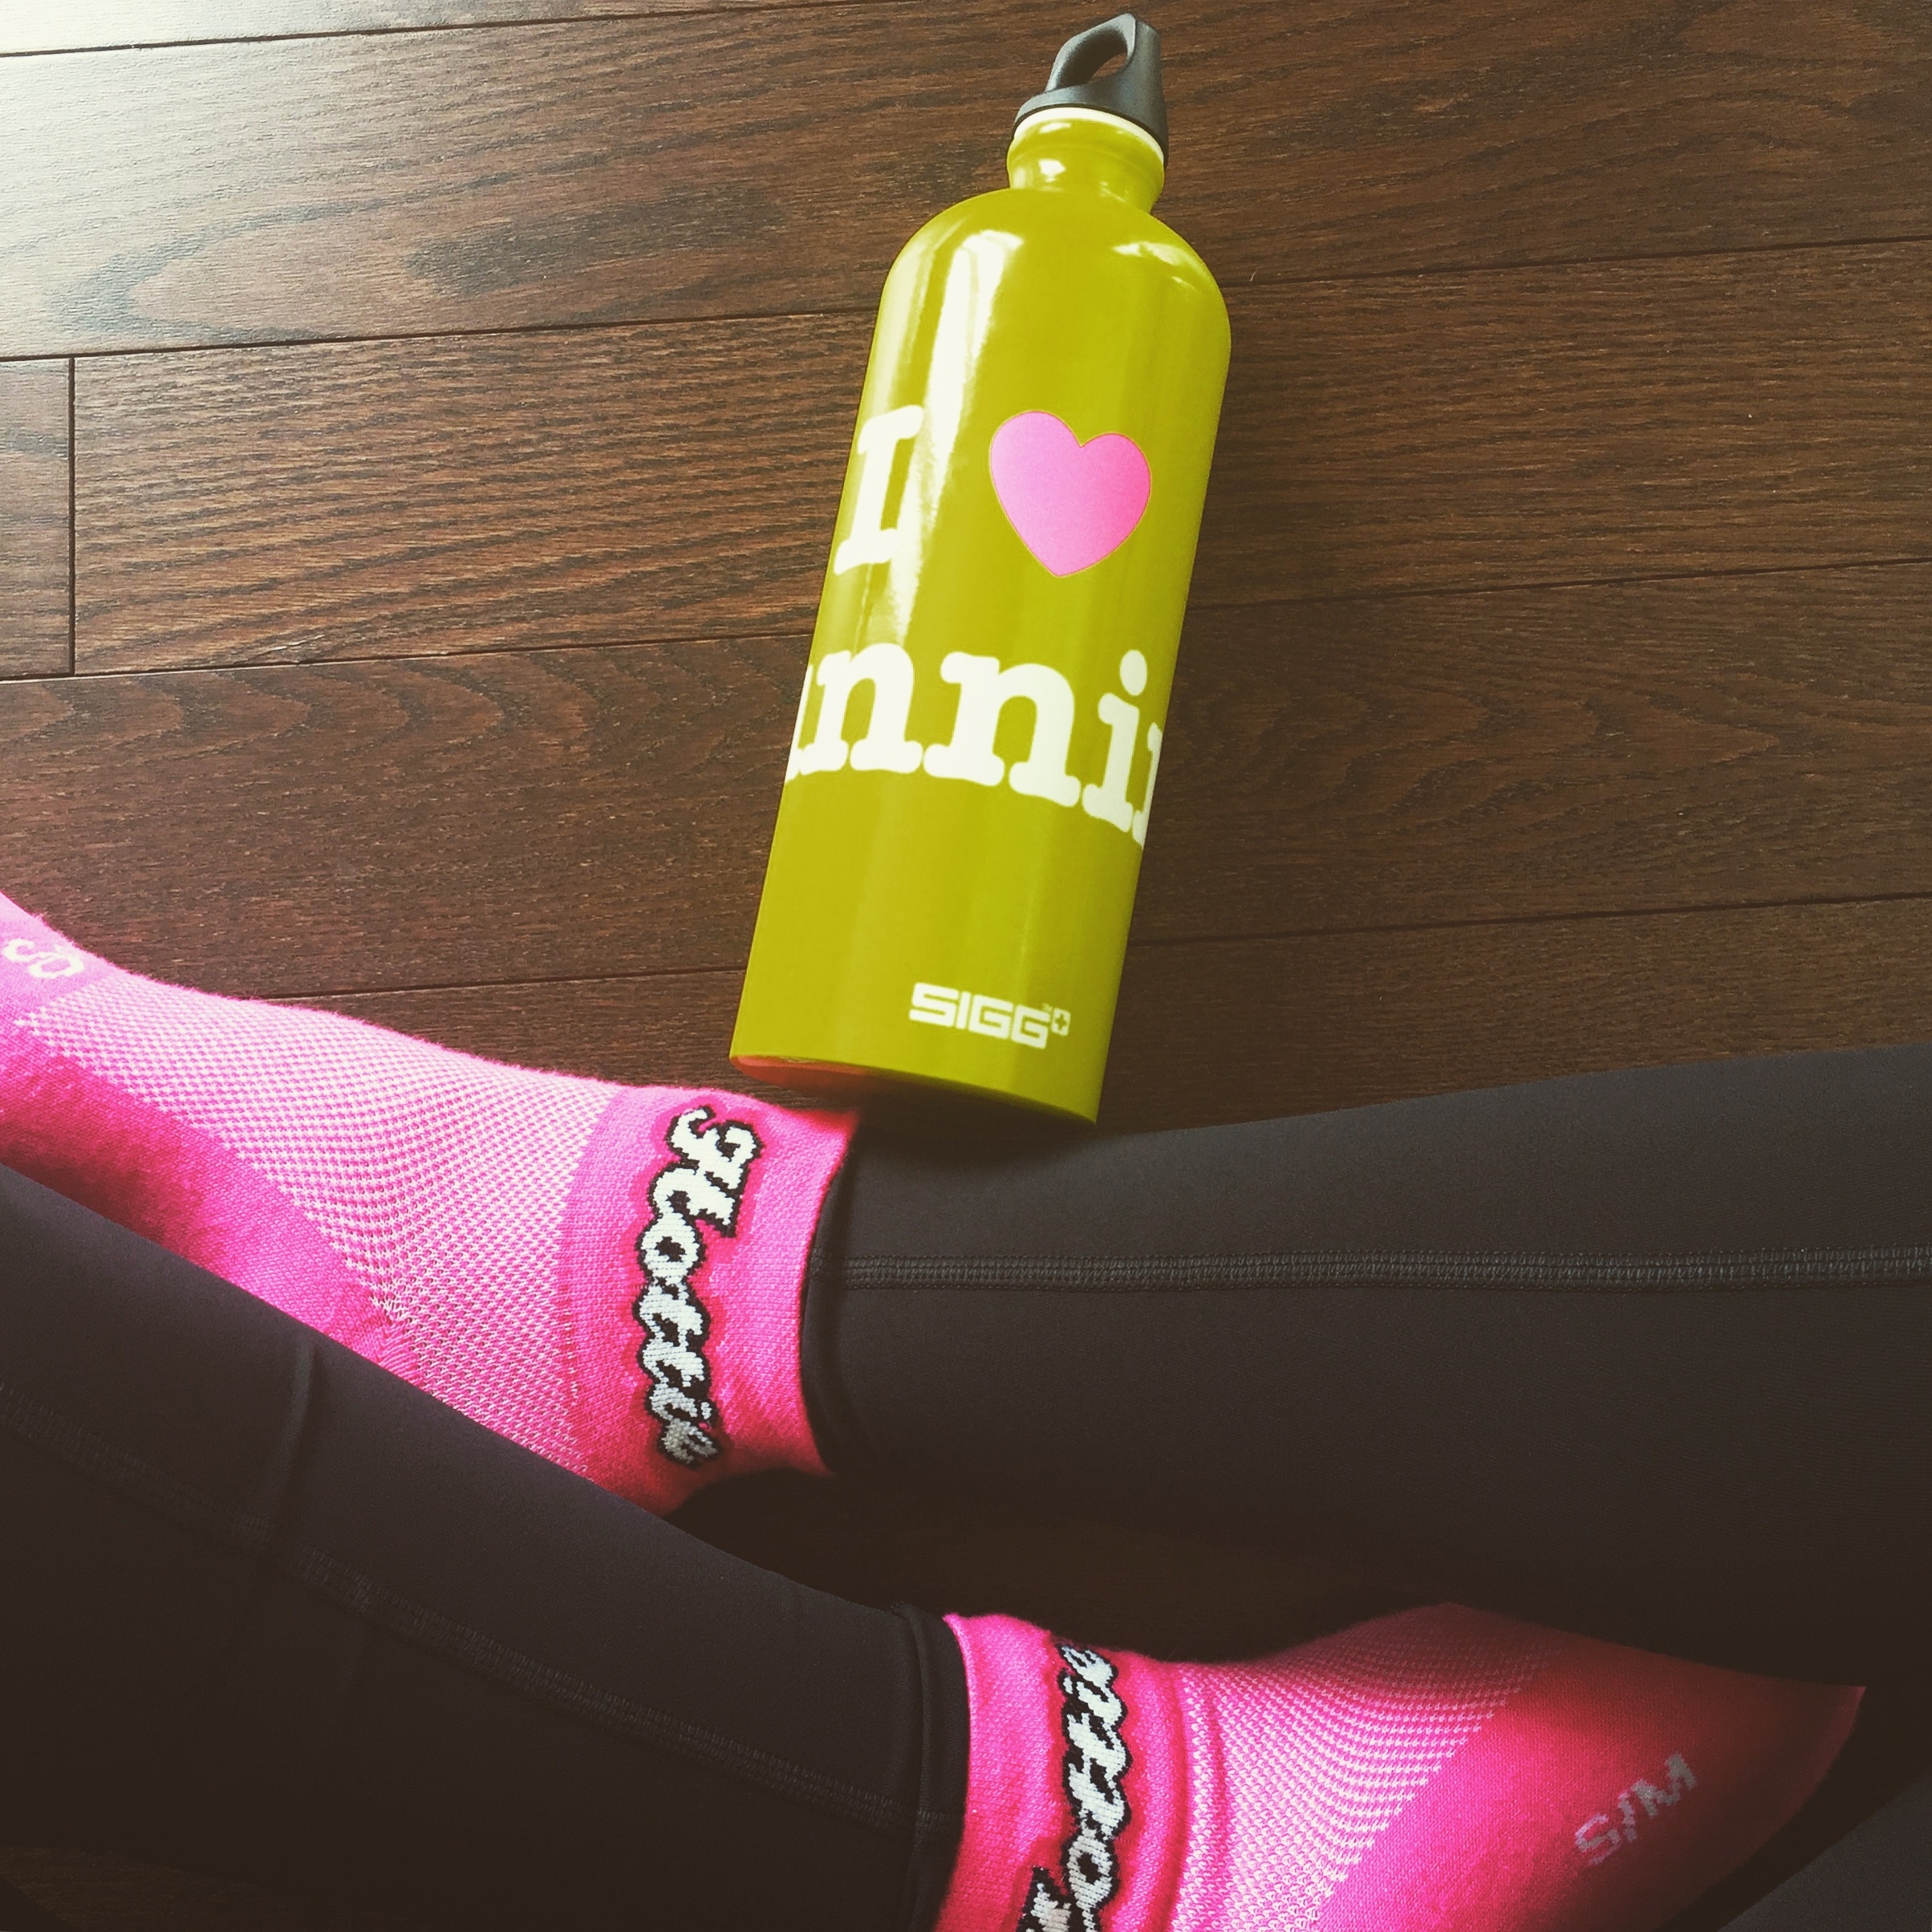 My fave water bottle and running socks!